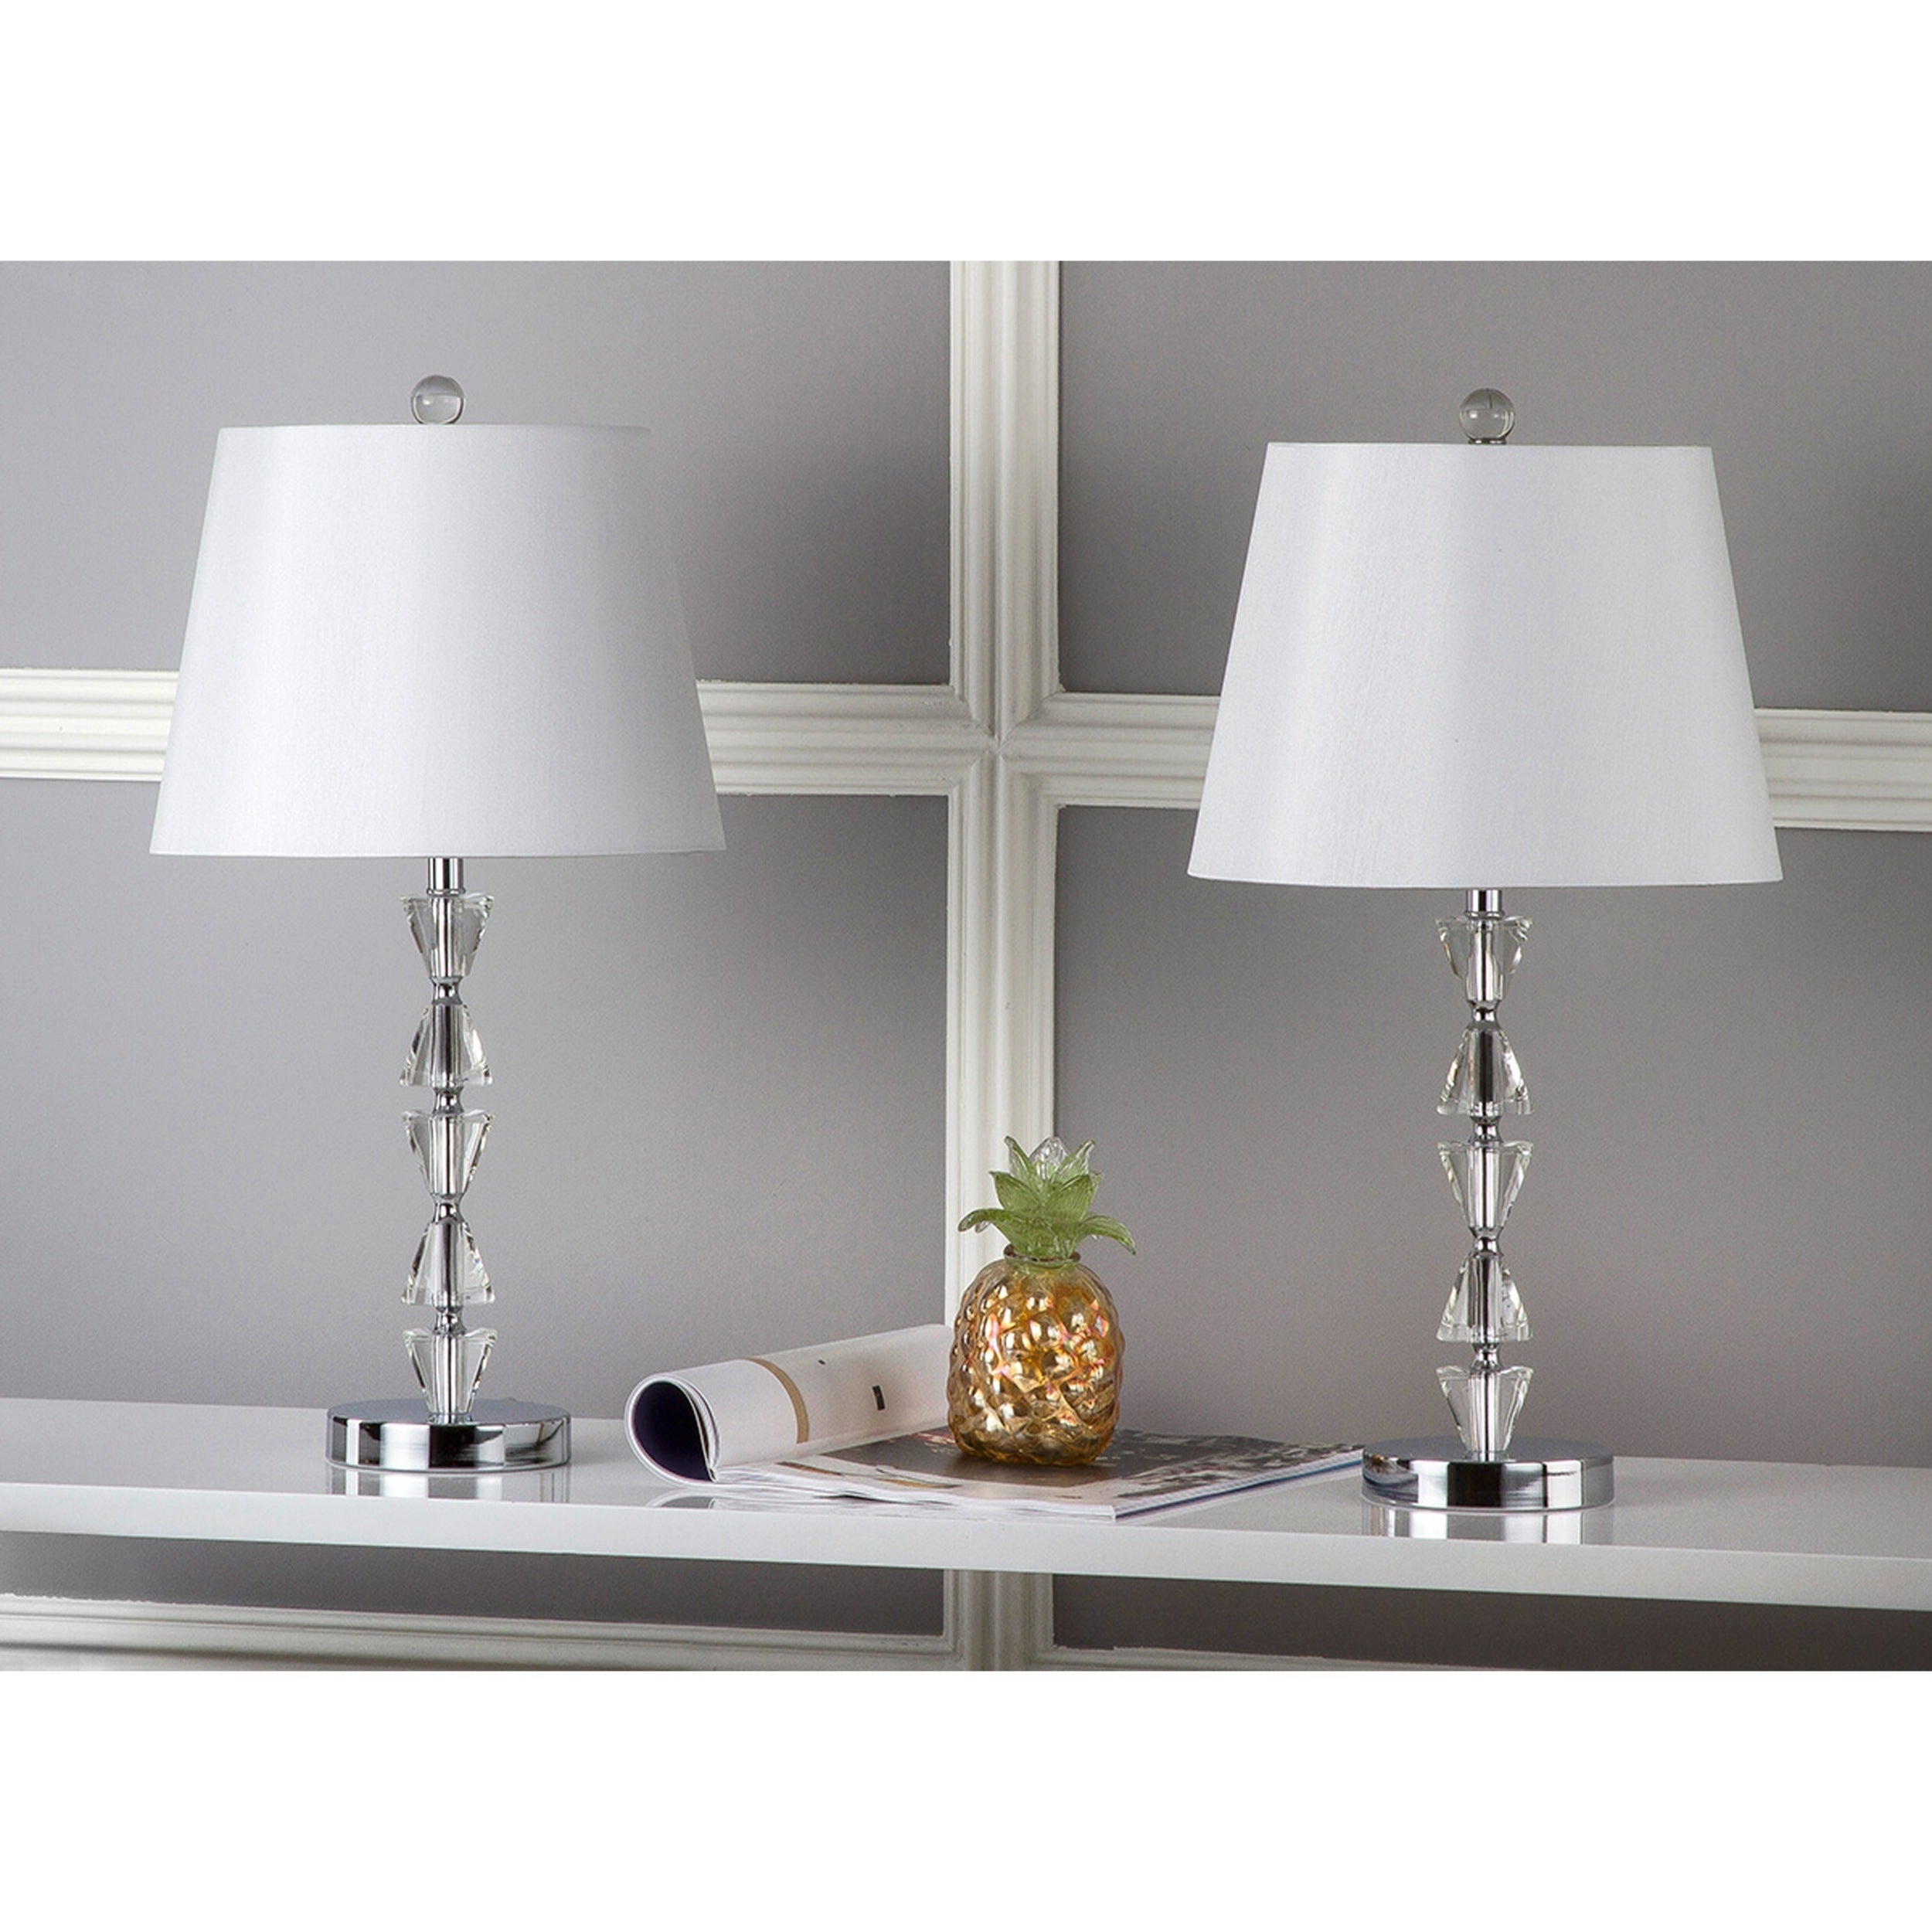 Shop Safavieh Lighting 21 Inch Deco White Shade Prisms Crystal Table